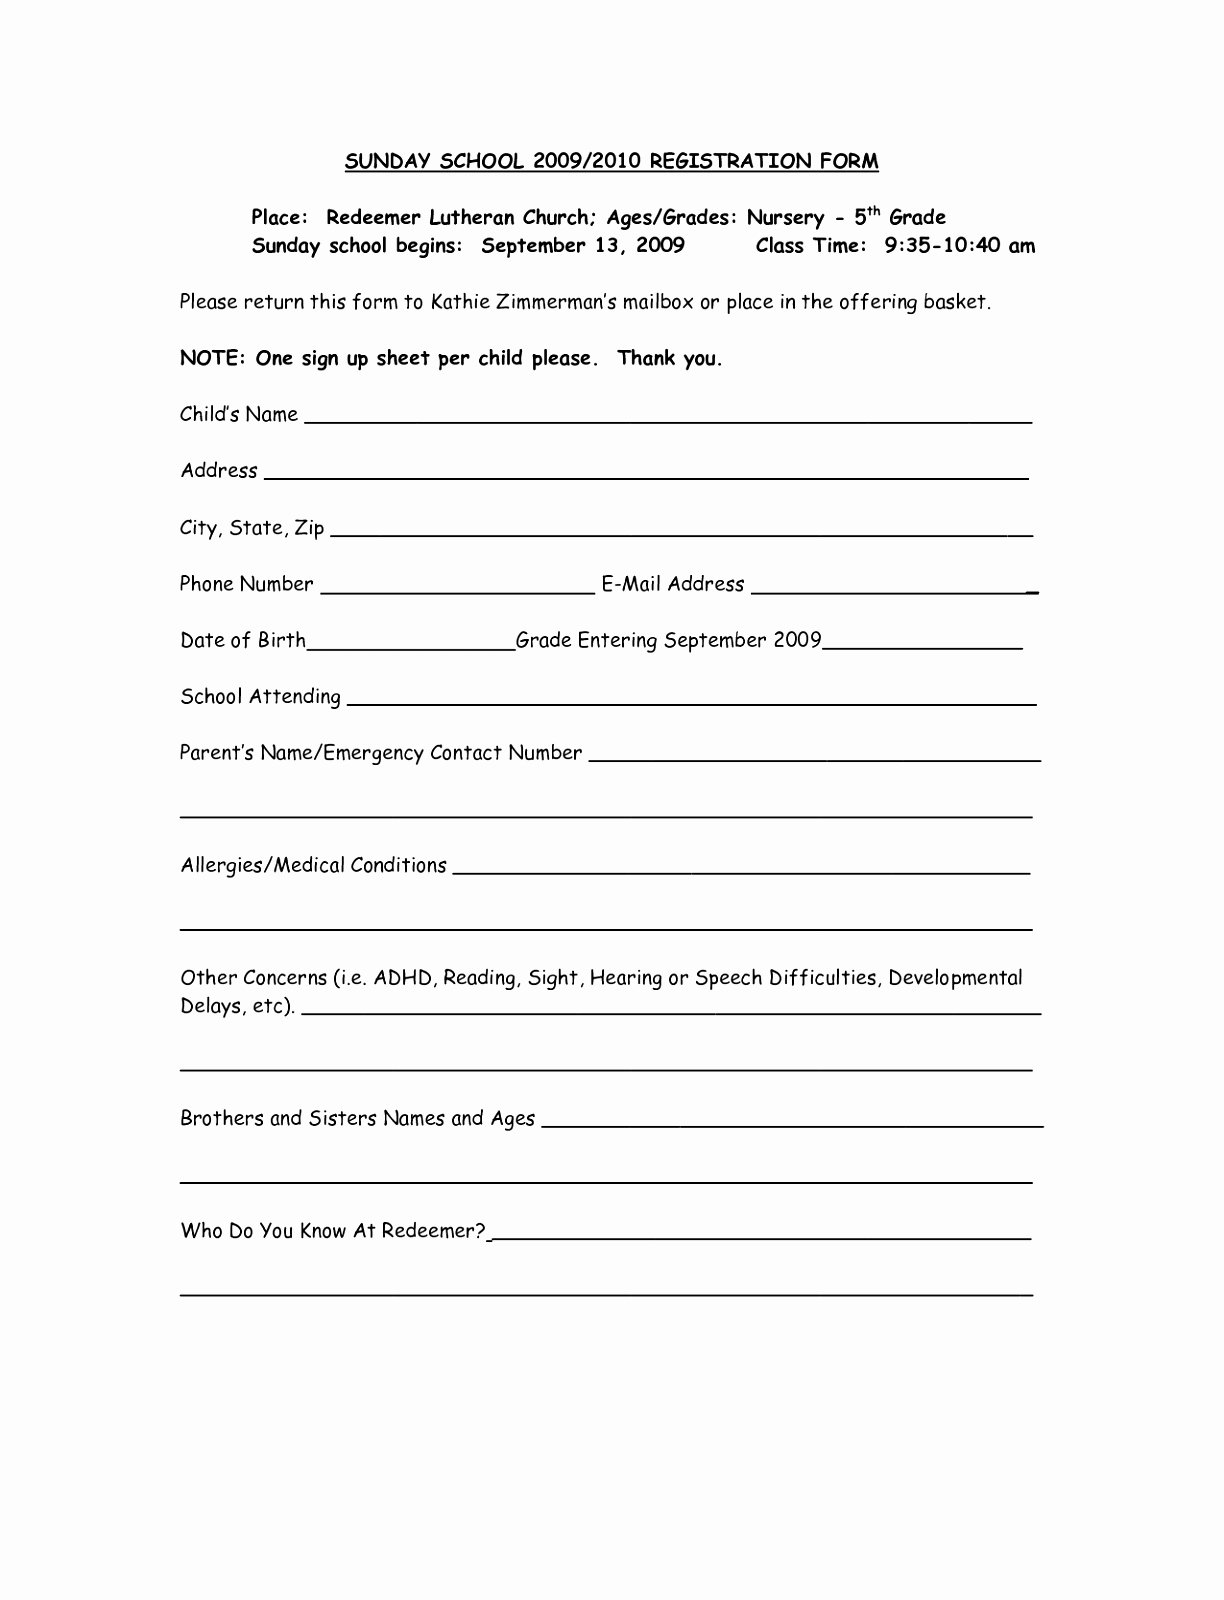 School Registration forms Template Luxury 7 Sunday School Registration form Template Cutei